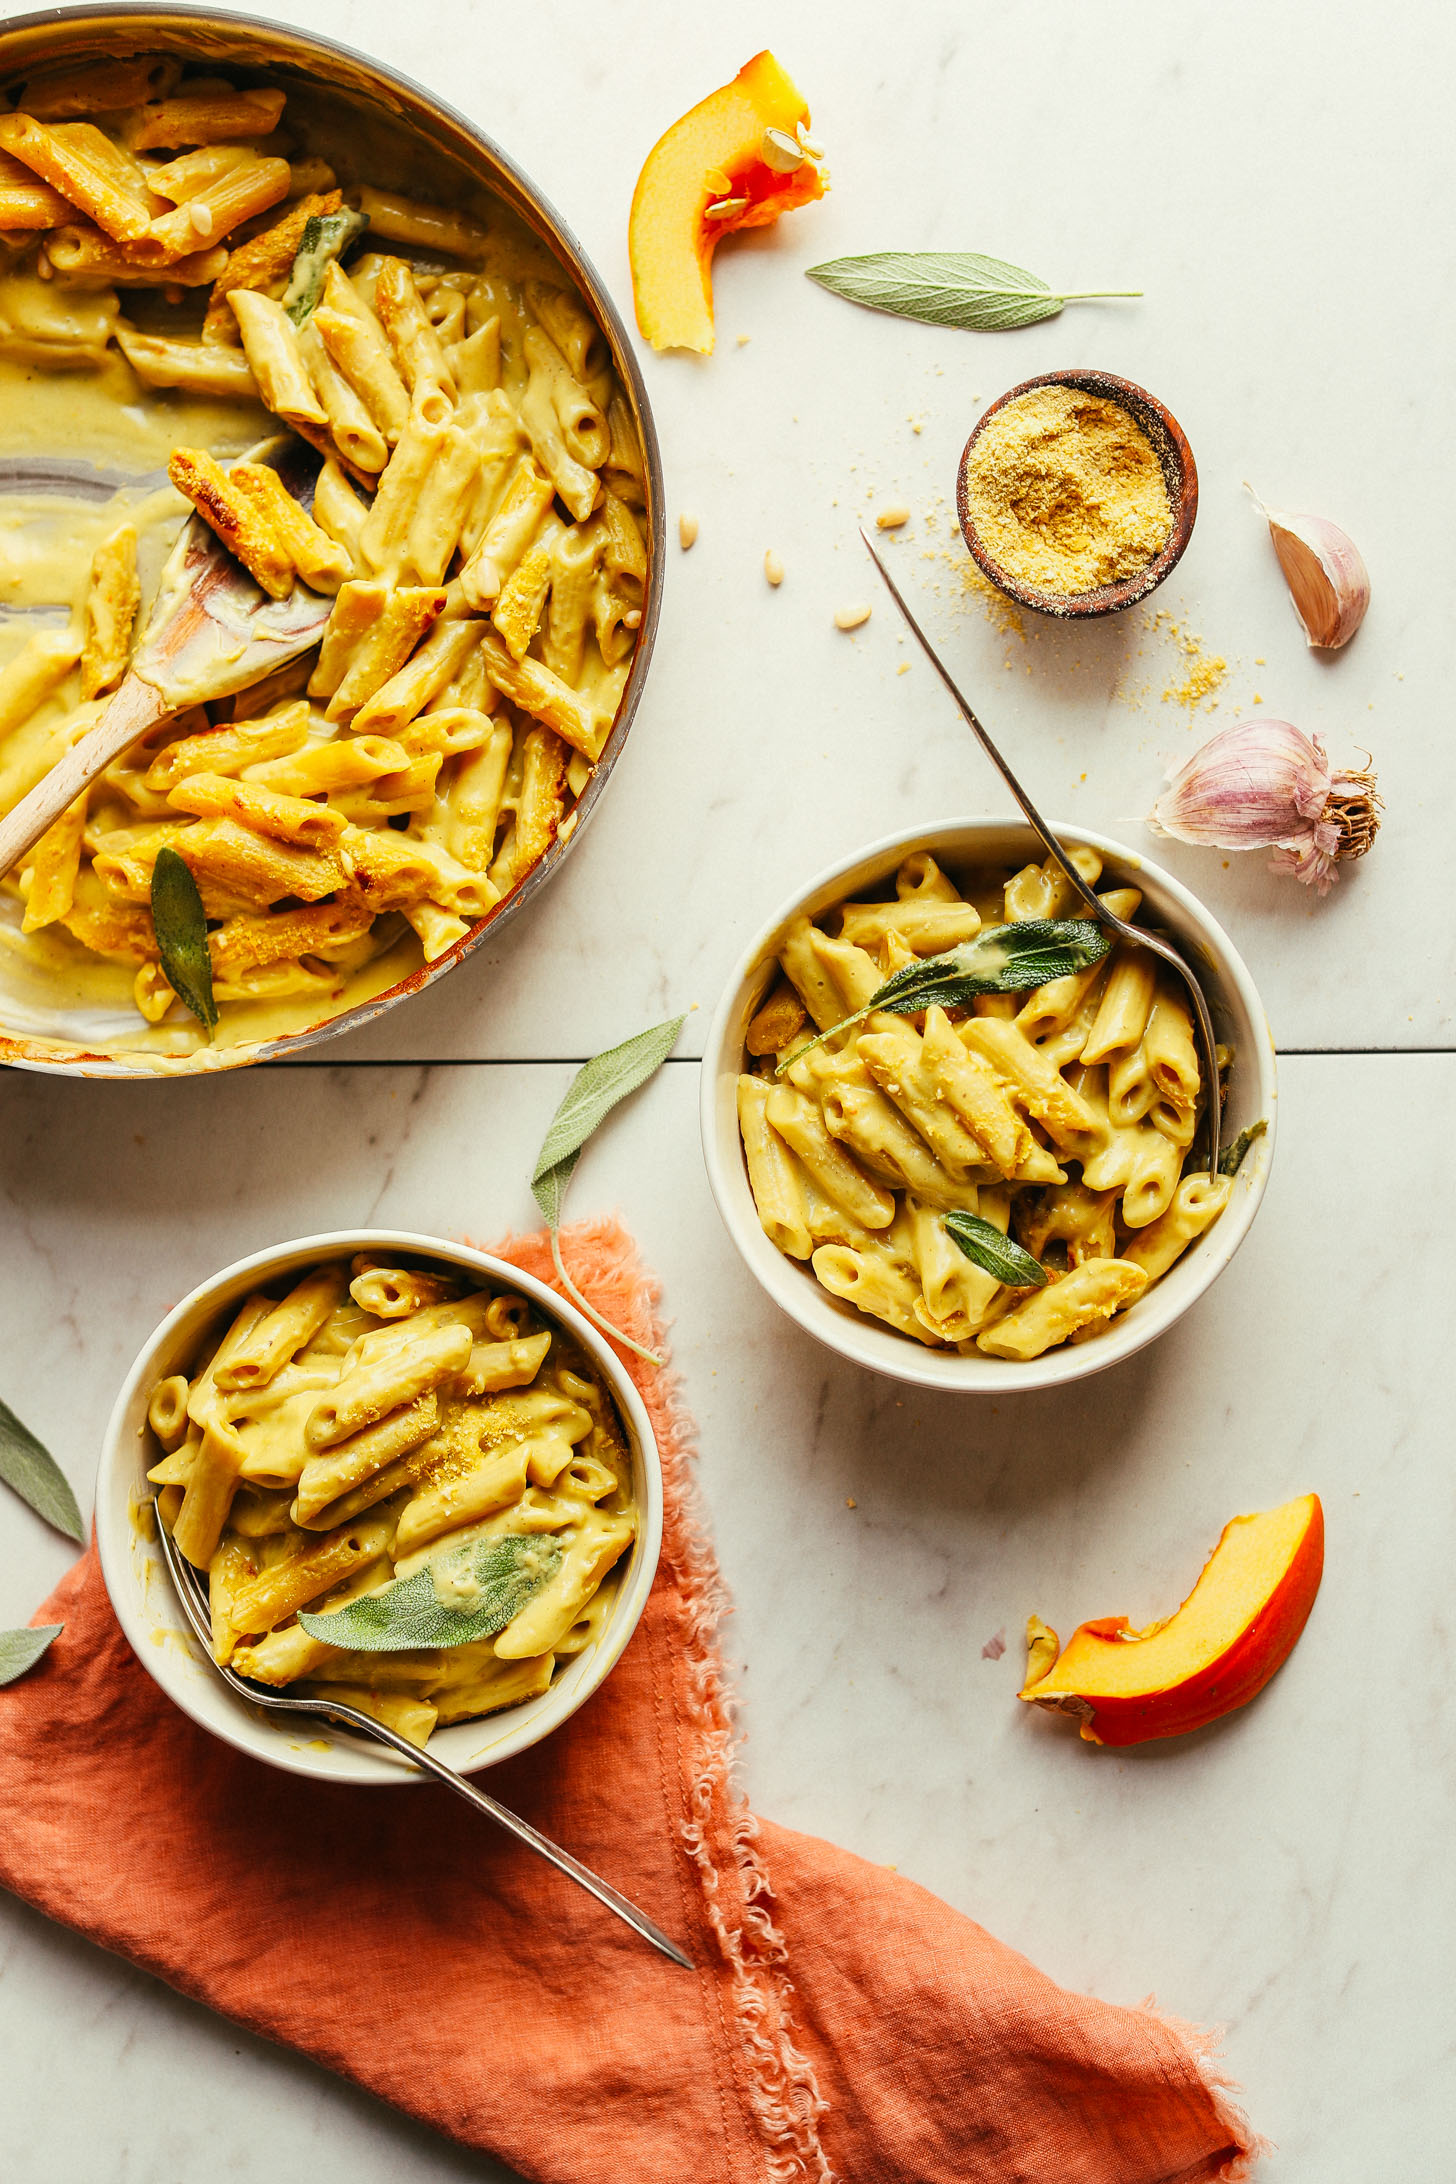 Serving two bowls of Pumpkin Mac 'n' Cheese from a large saute pan